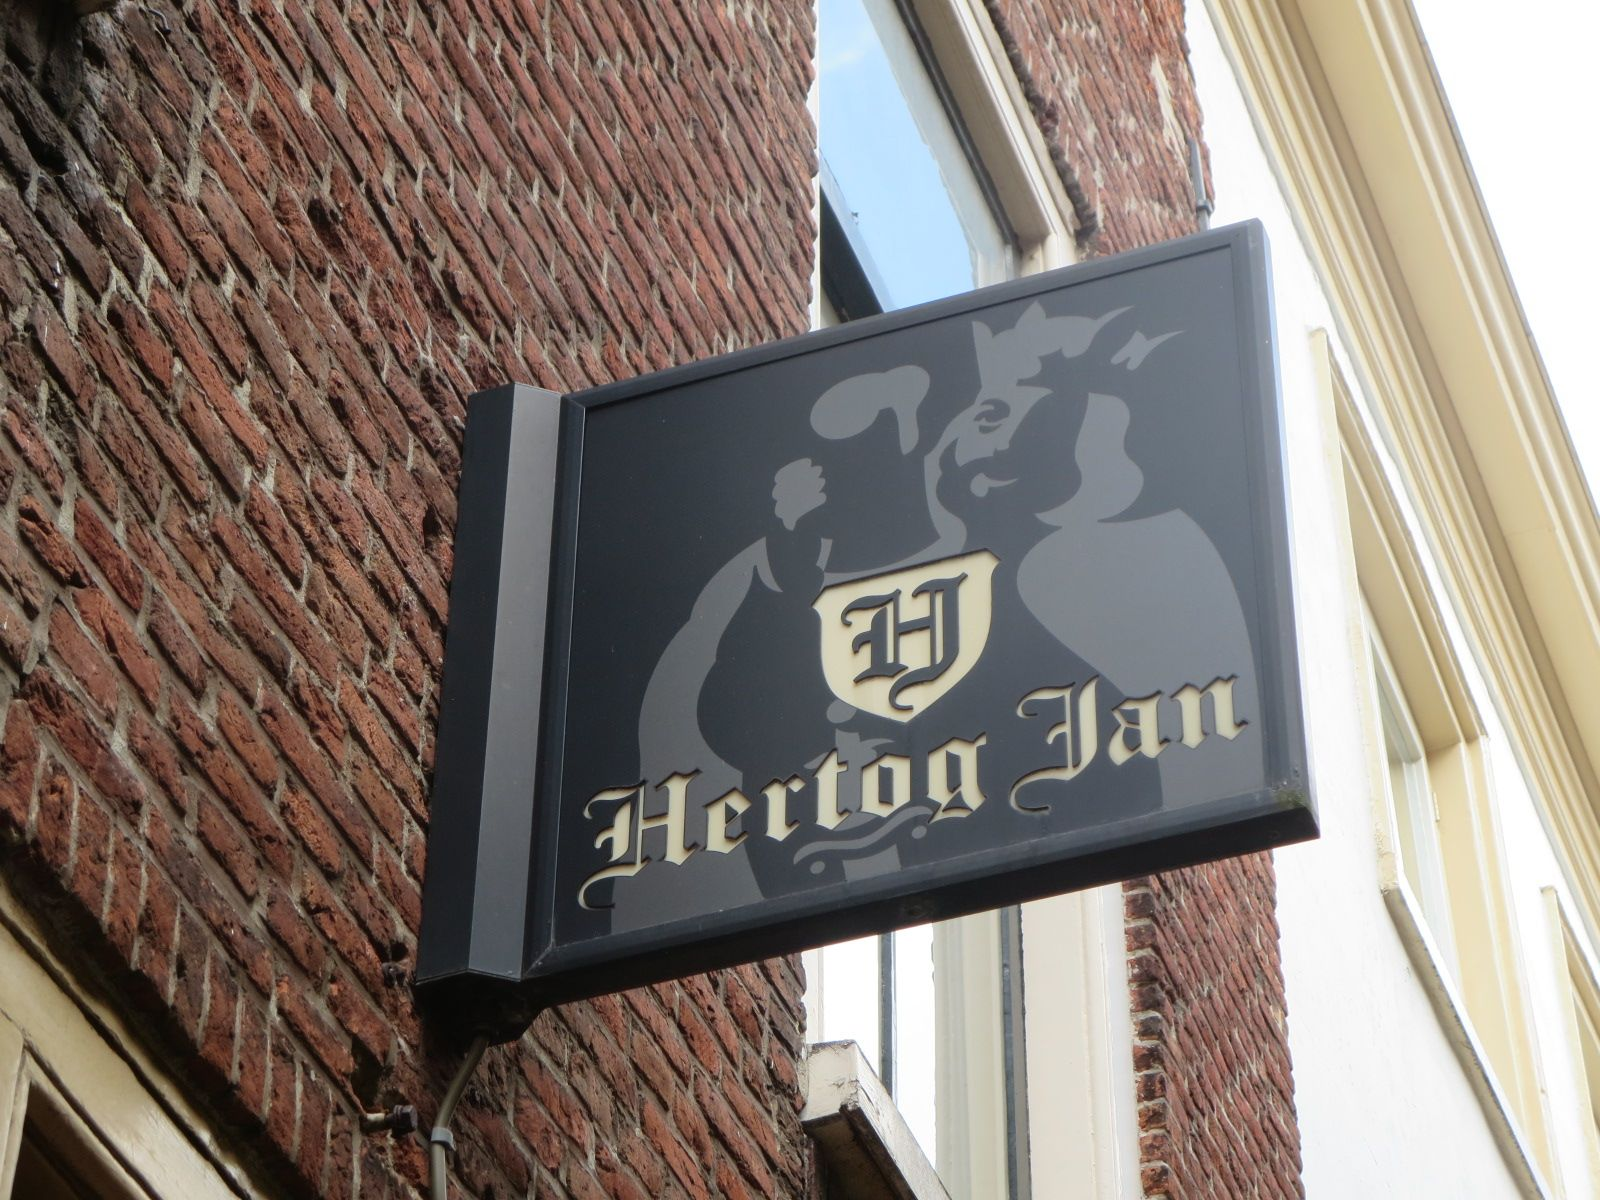 Hertog Jan Bier Hertog Jan Bier Alcohol Signs Pinterest Alcohol